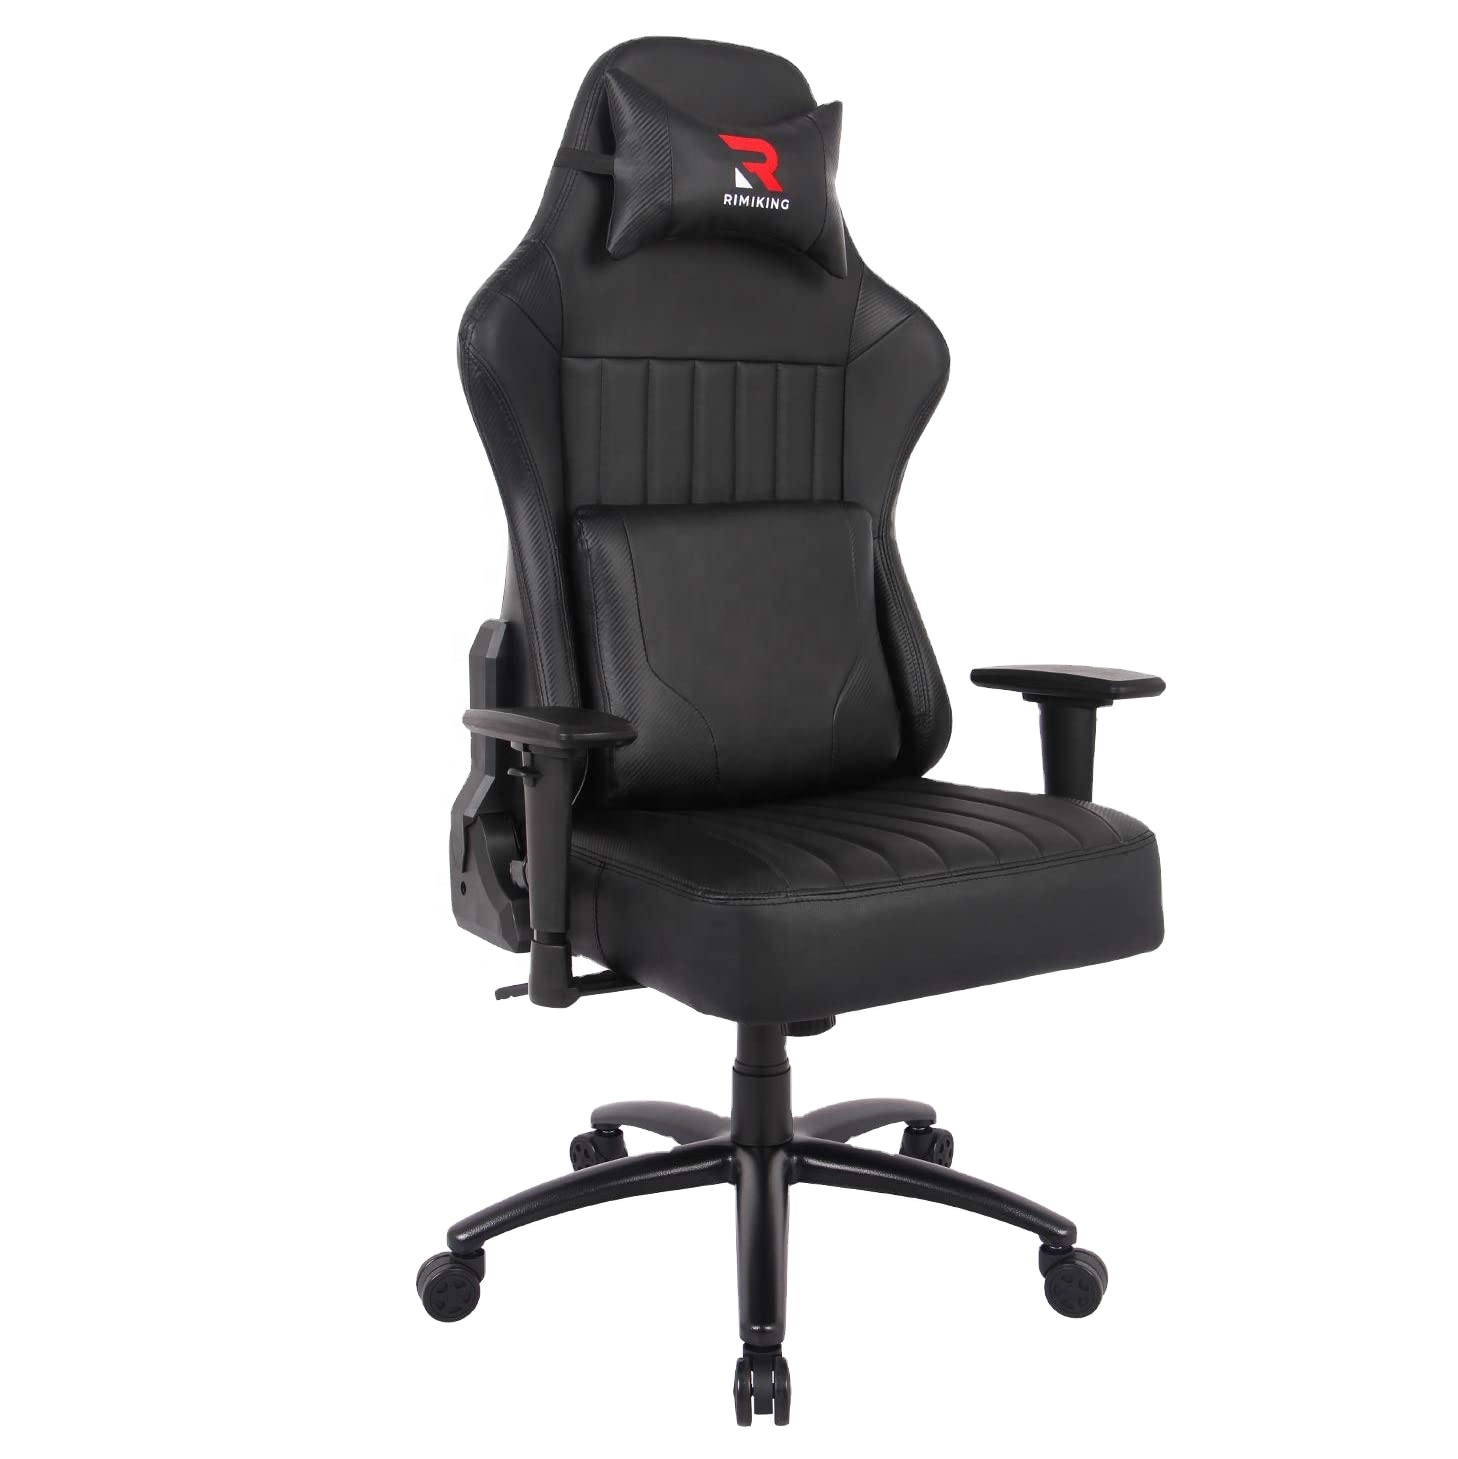 USA STOCK Ergonomic Swivel Gaming Chair,High-Back Leather chair with Lumbar support,Hot selling